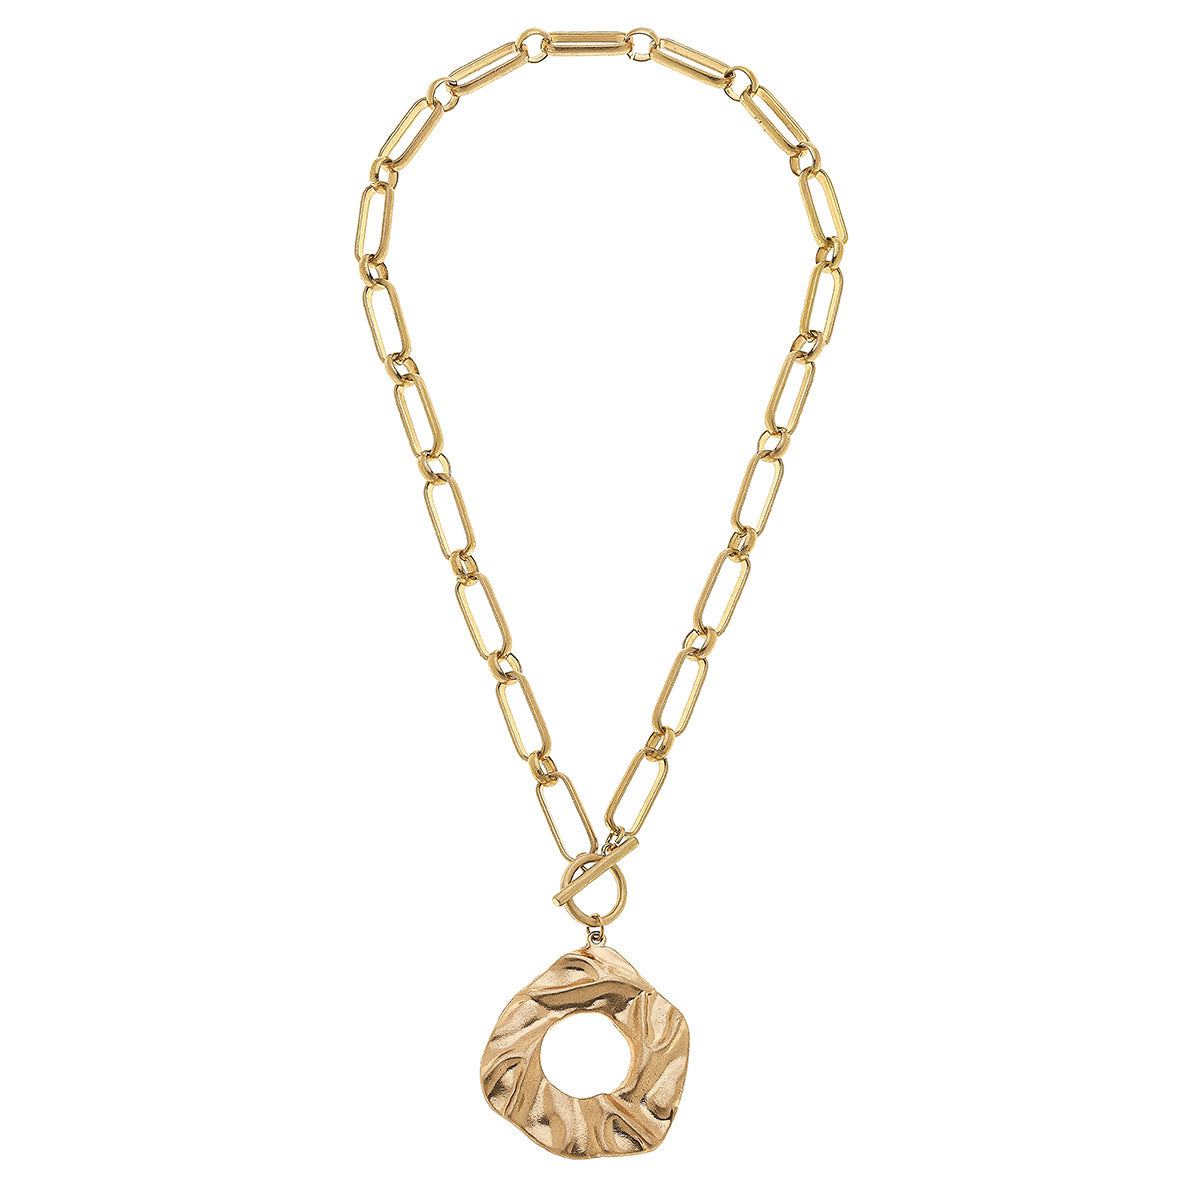 Venice T-Bar Necklace in Worn Gold